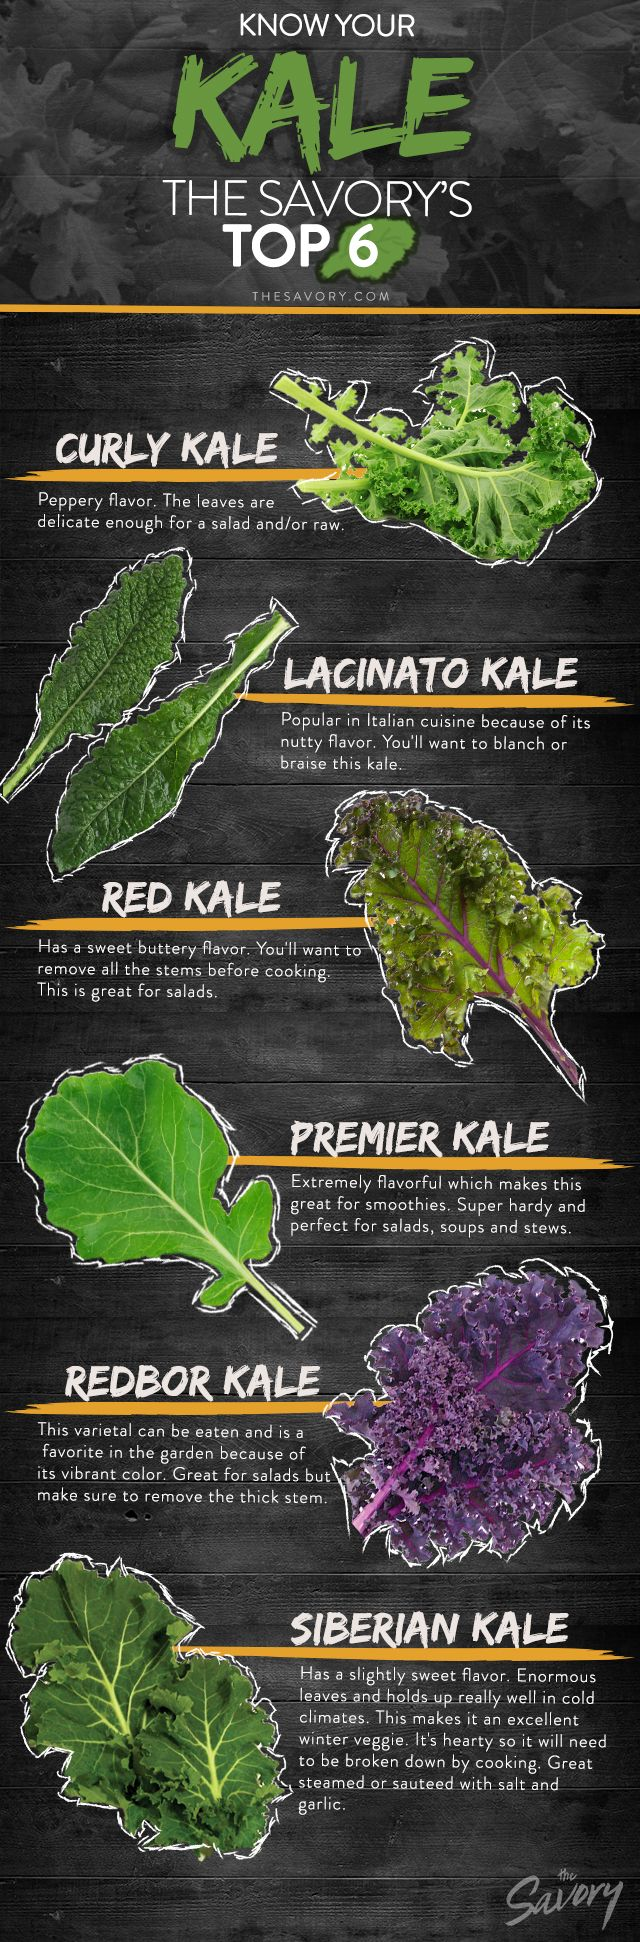 Know Your Kale: The Savory's Top 6 | Obsev